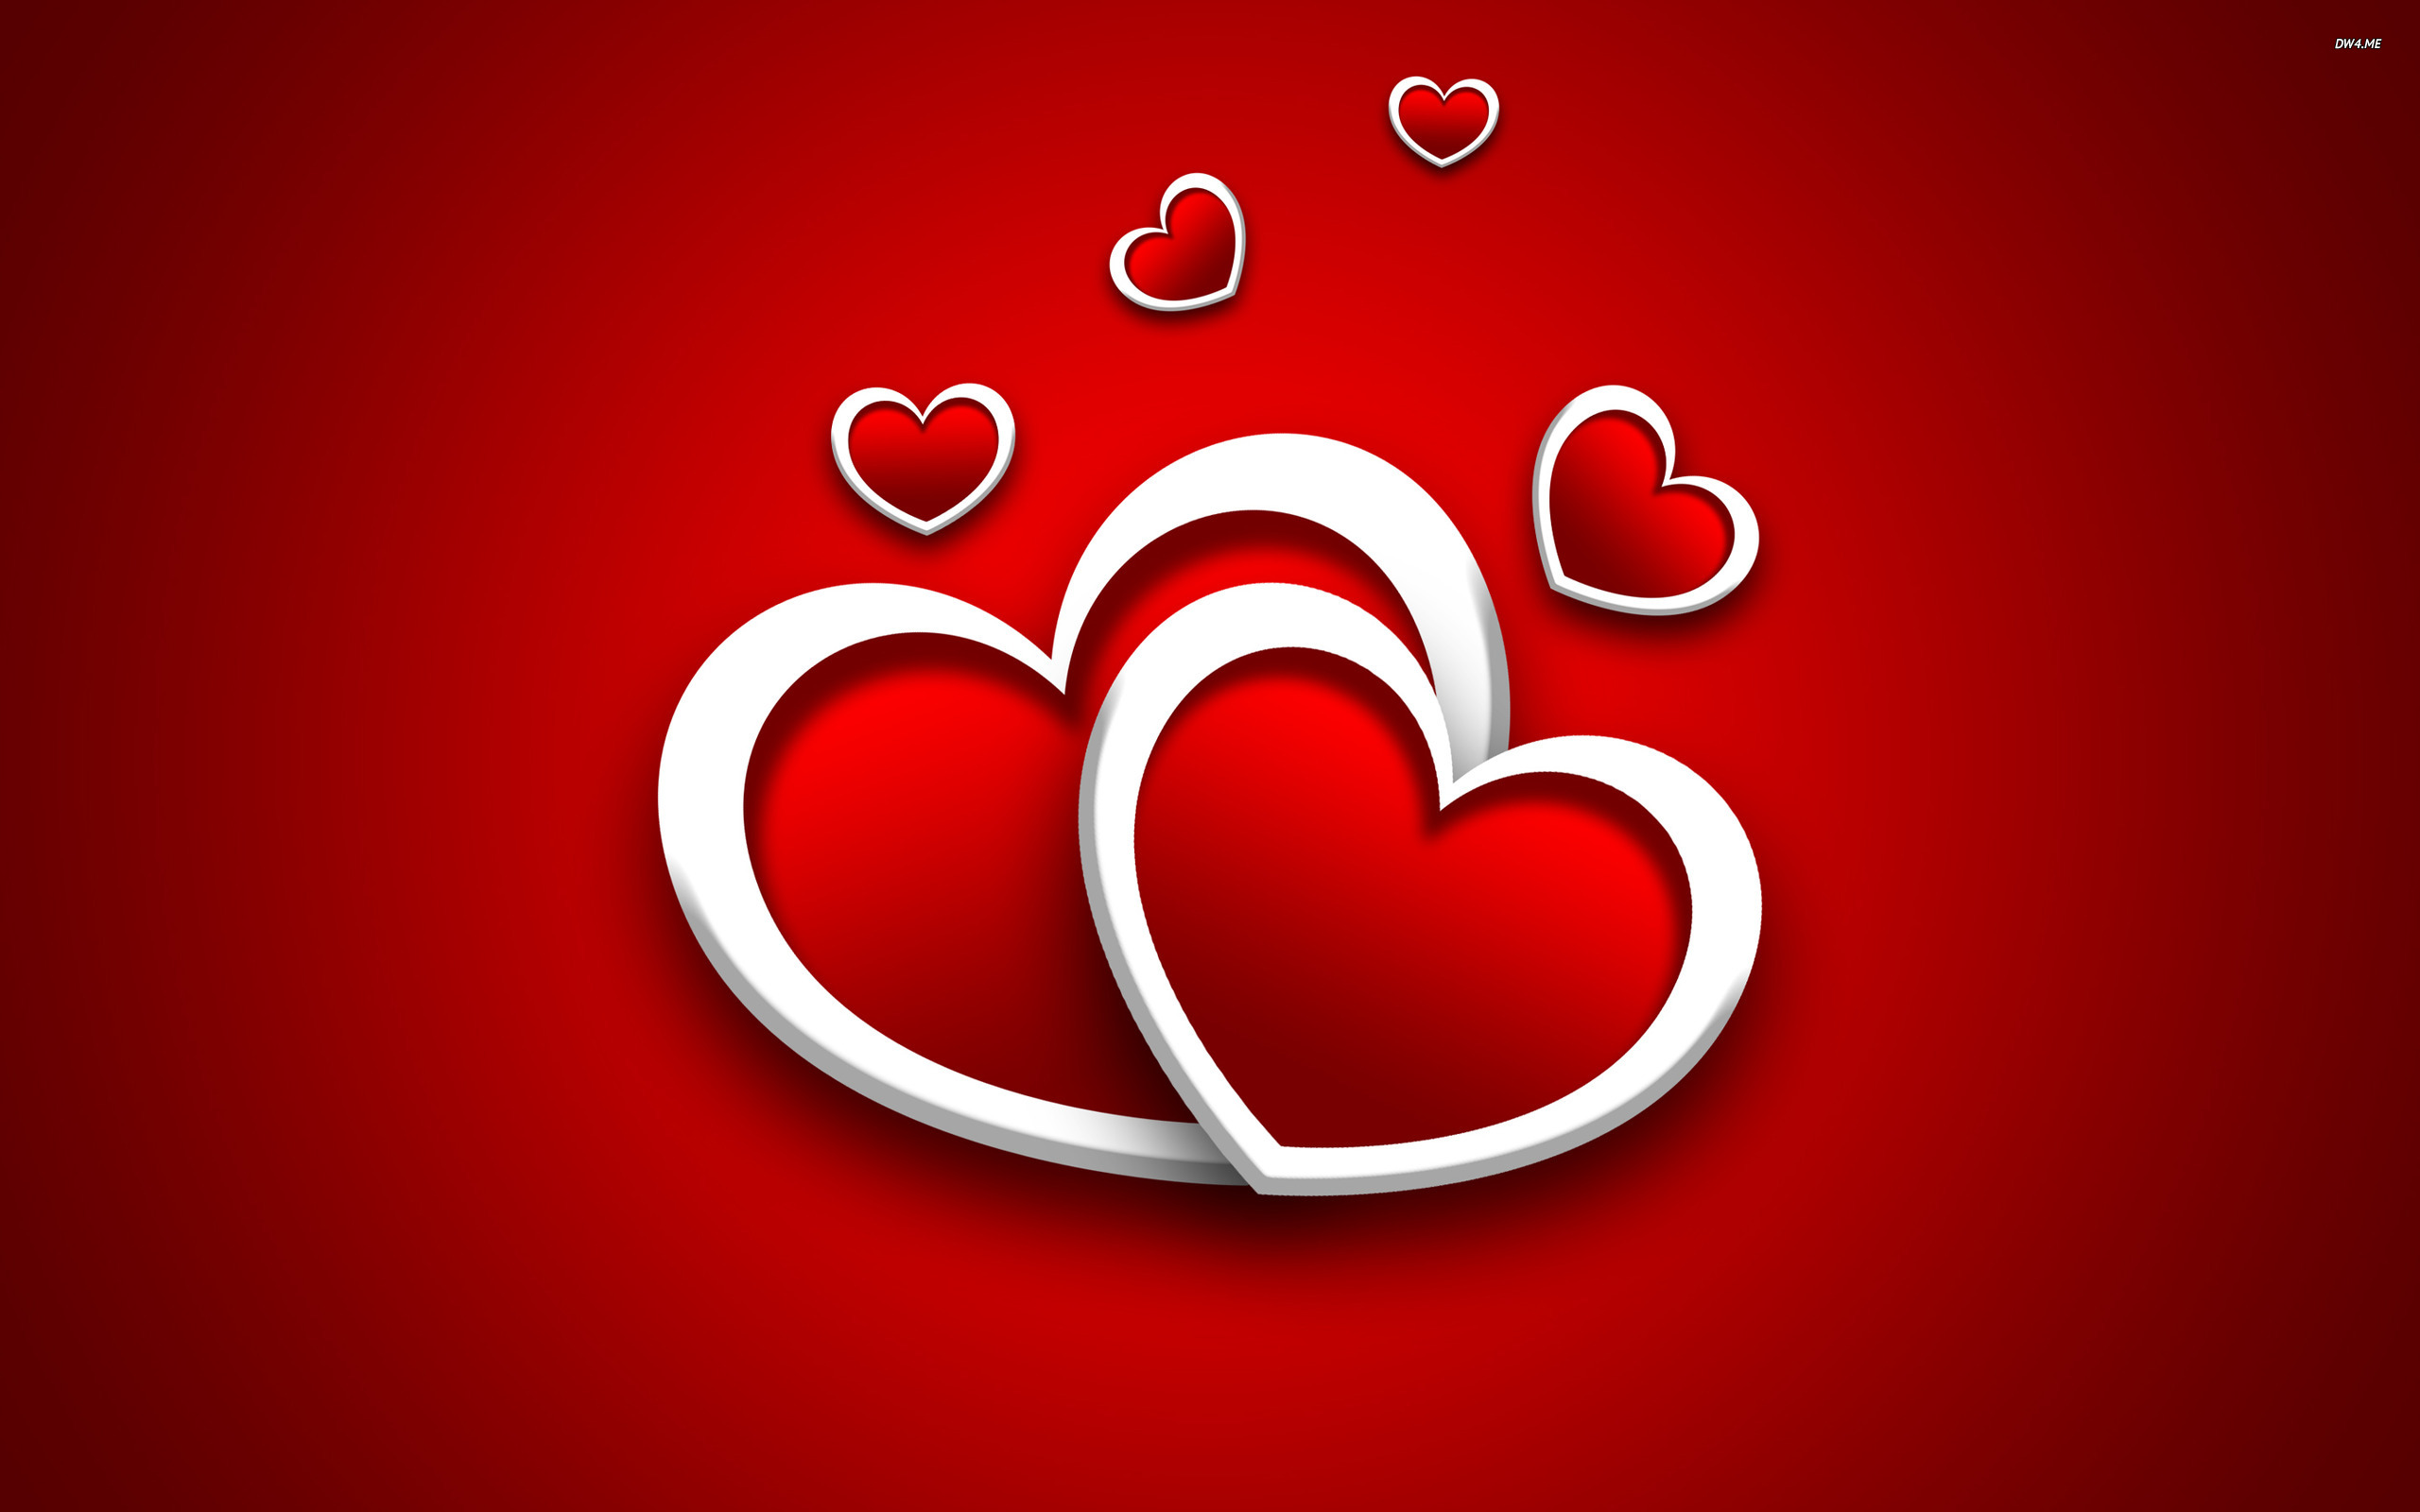 heart wallpapers red